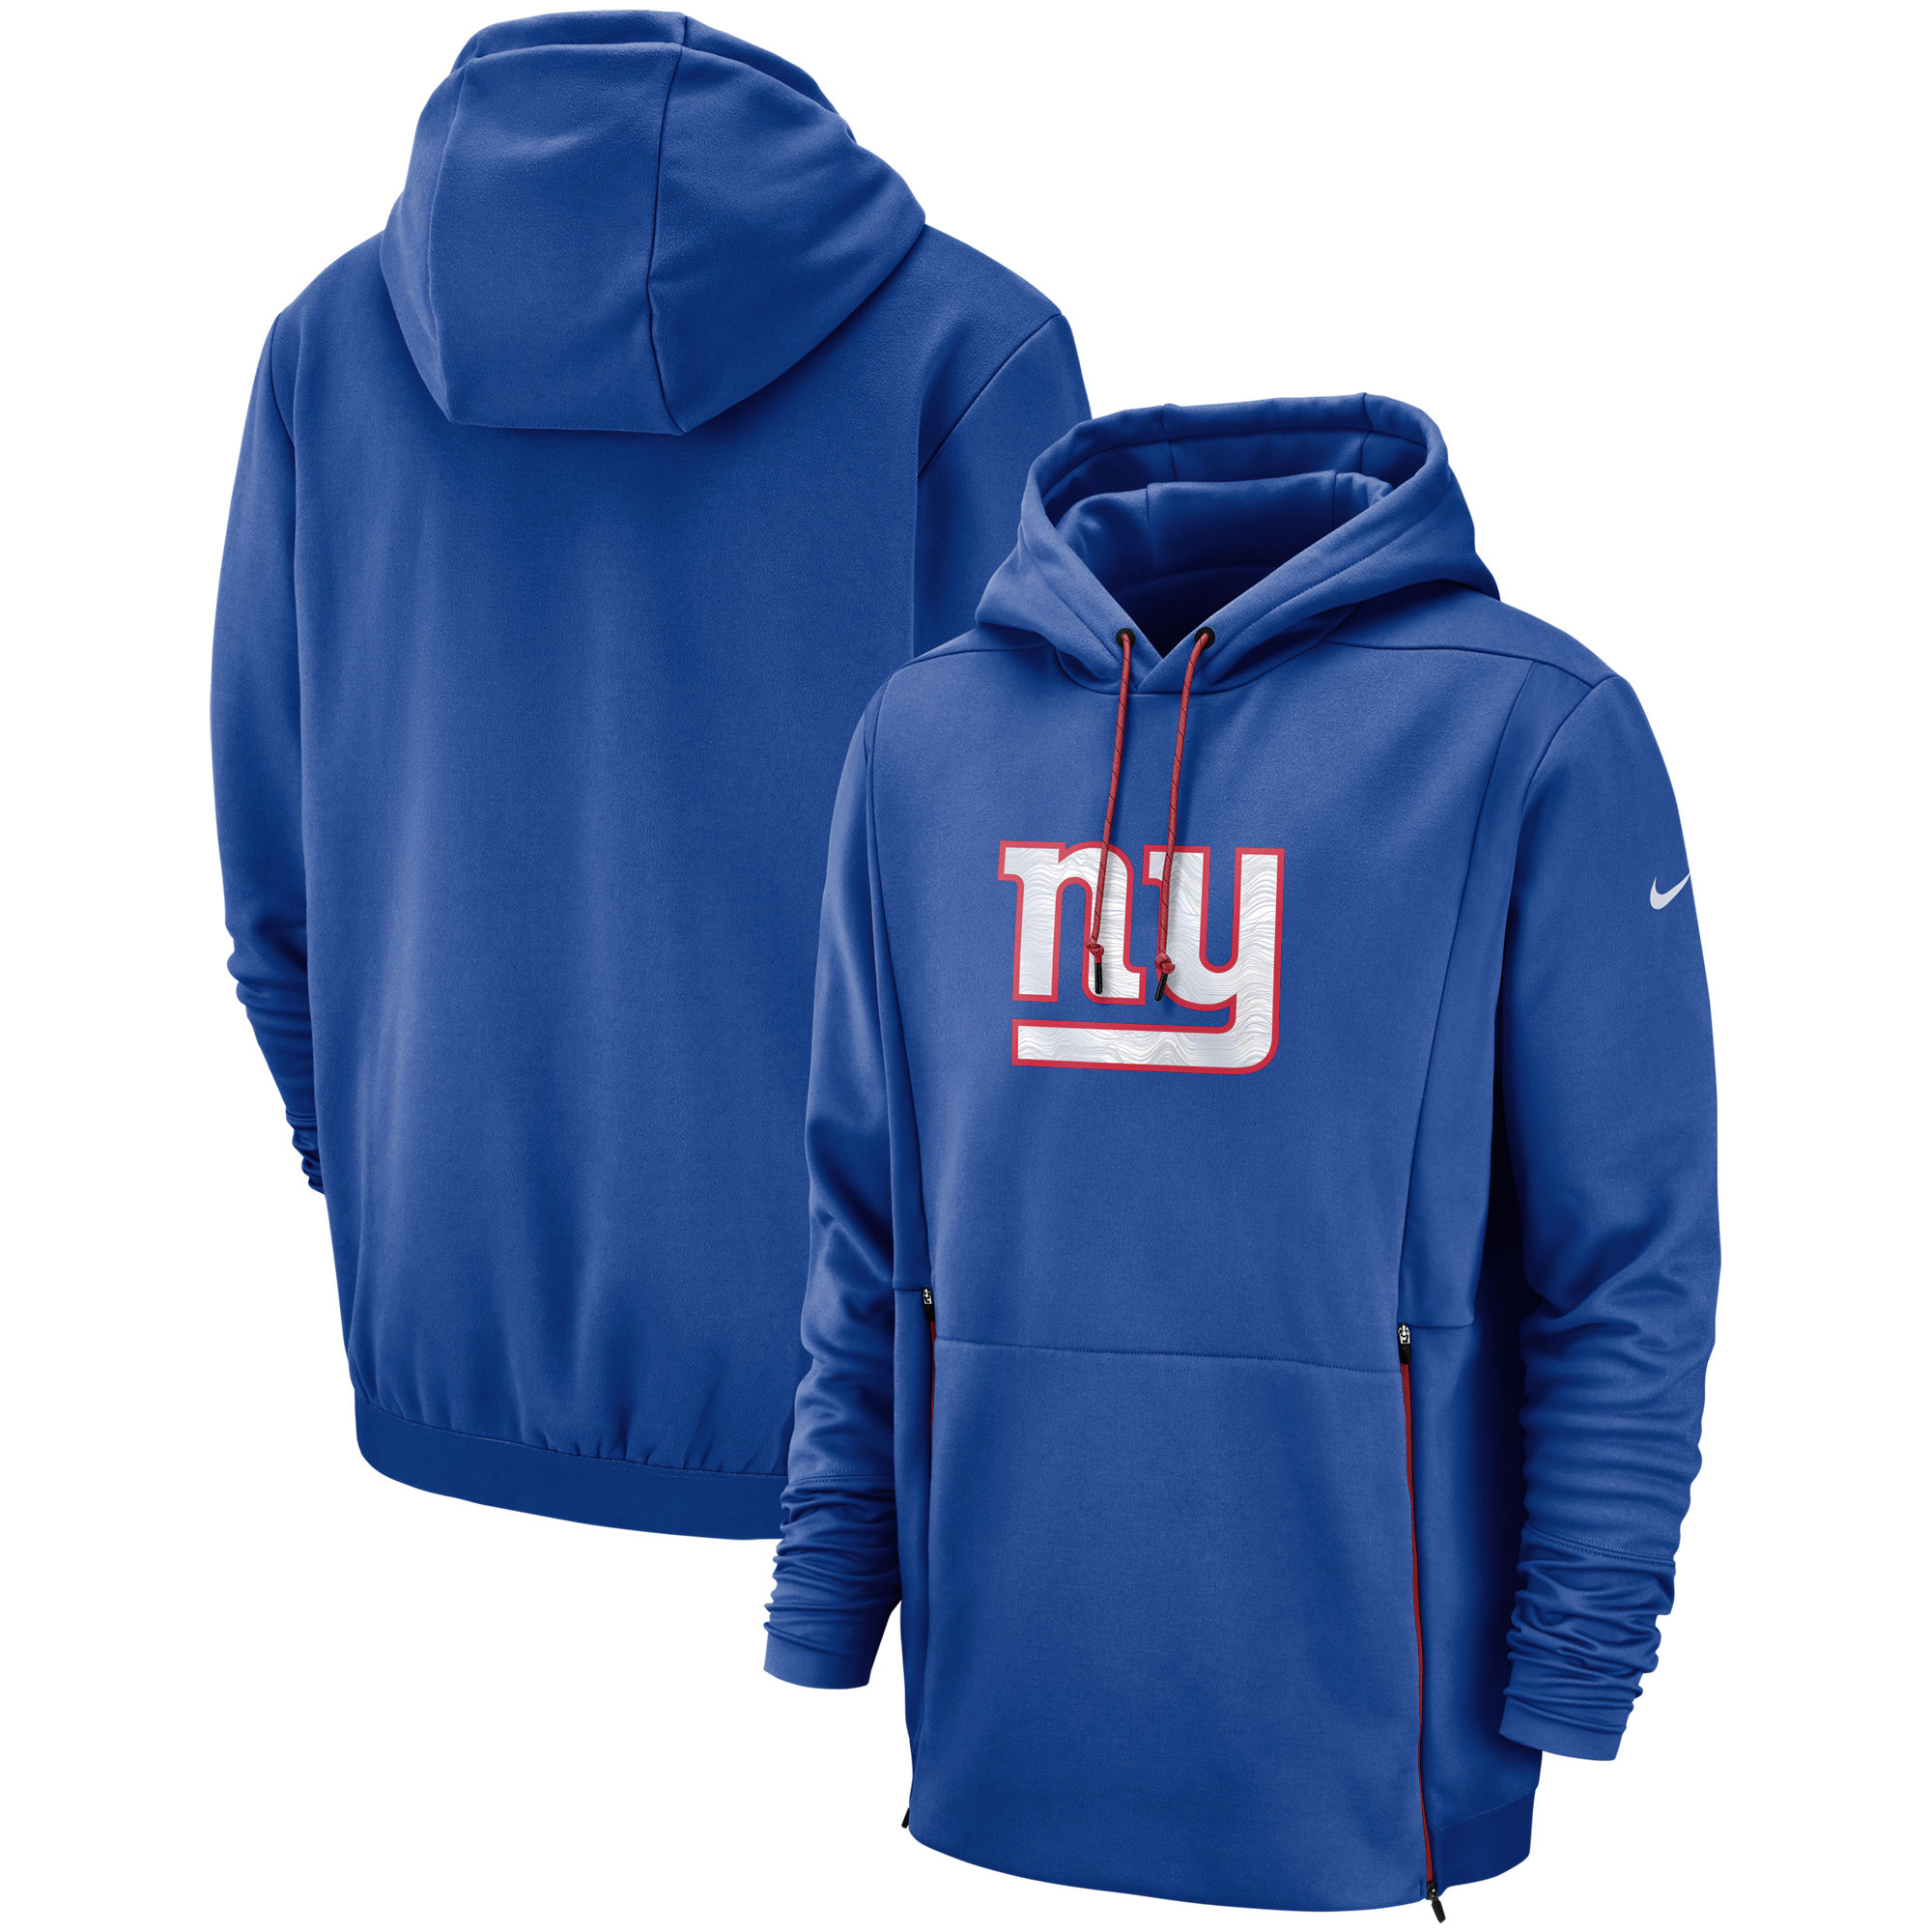 New York Giants Nike Sideline Performance Player Pullover Hoodie - Royal